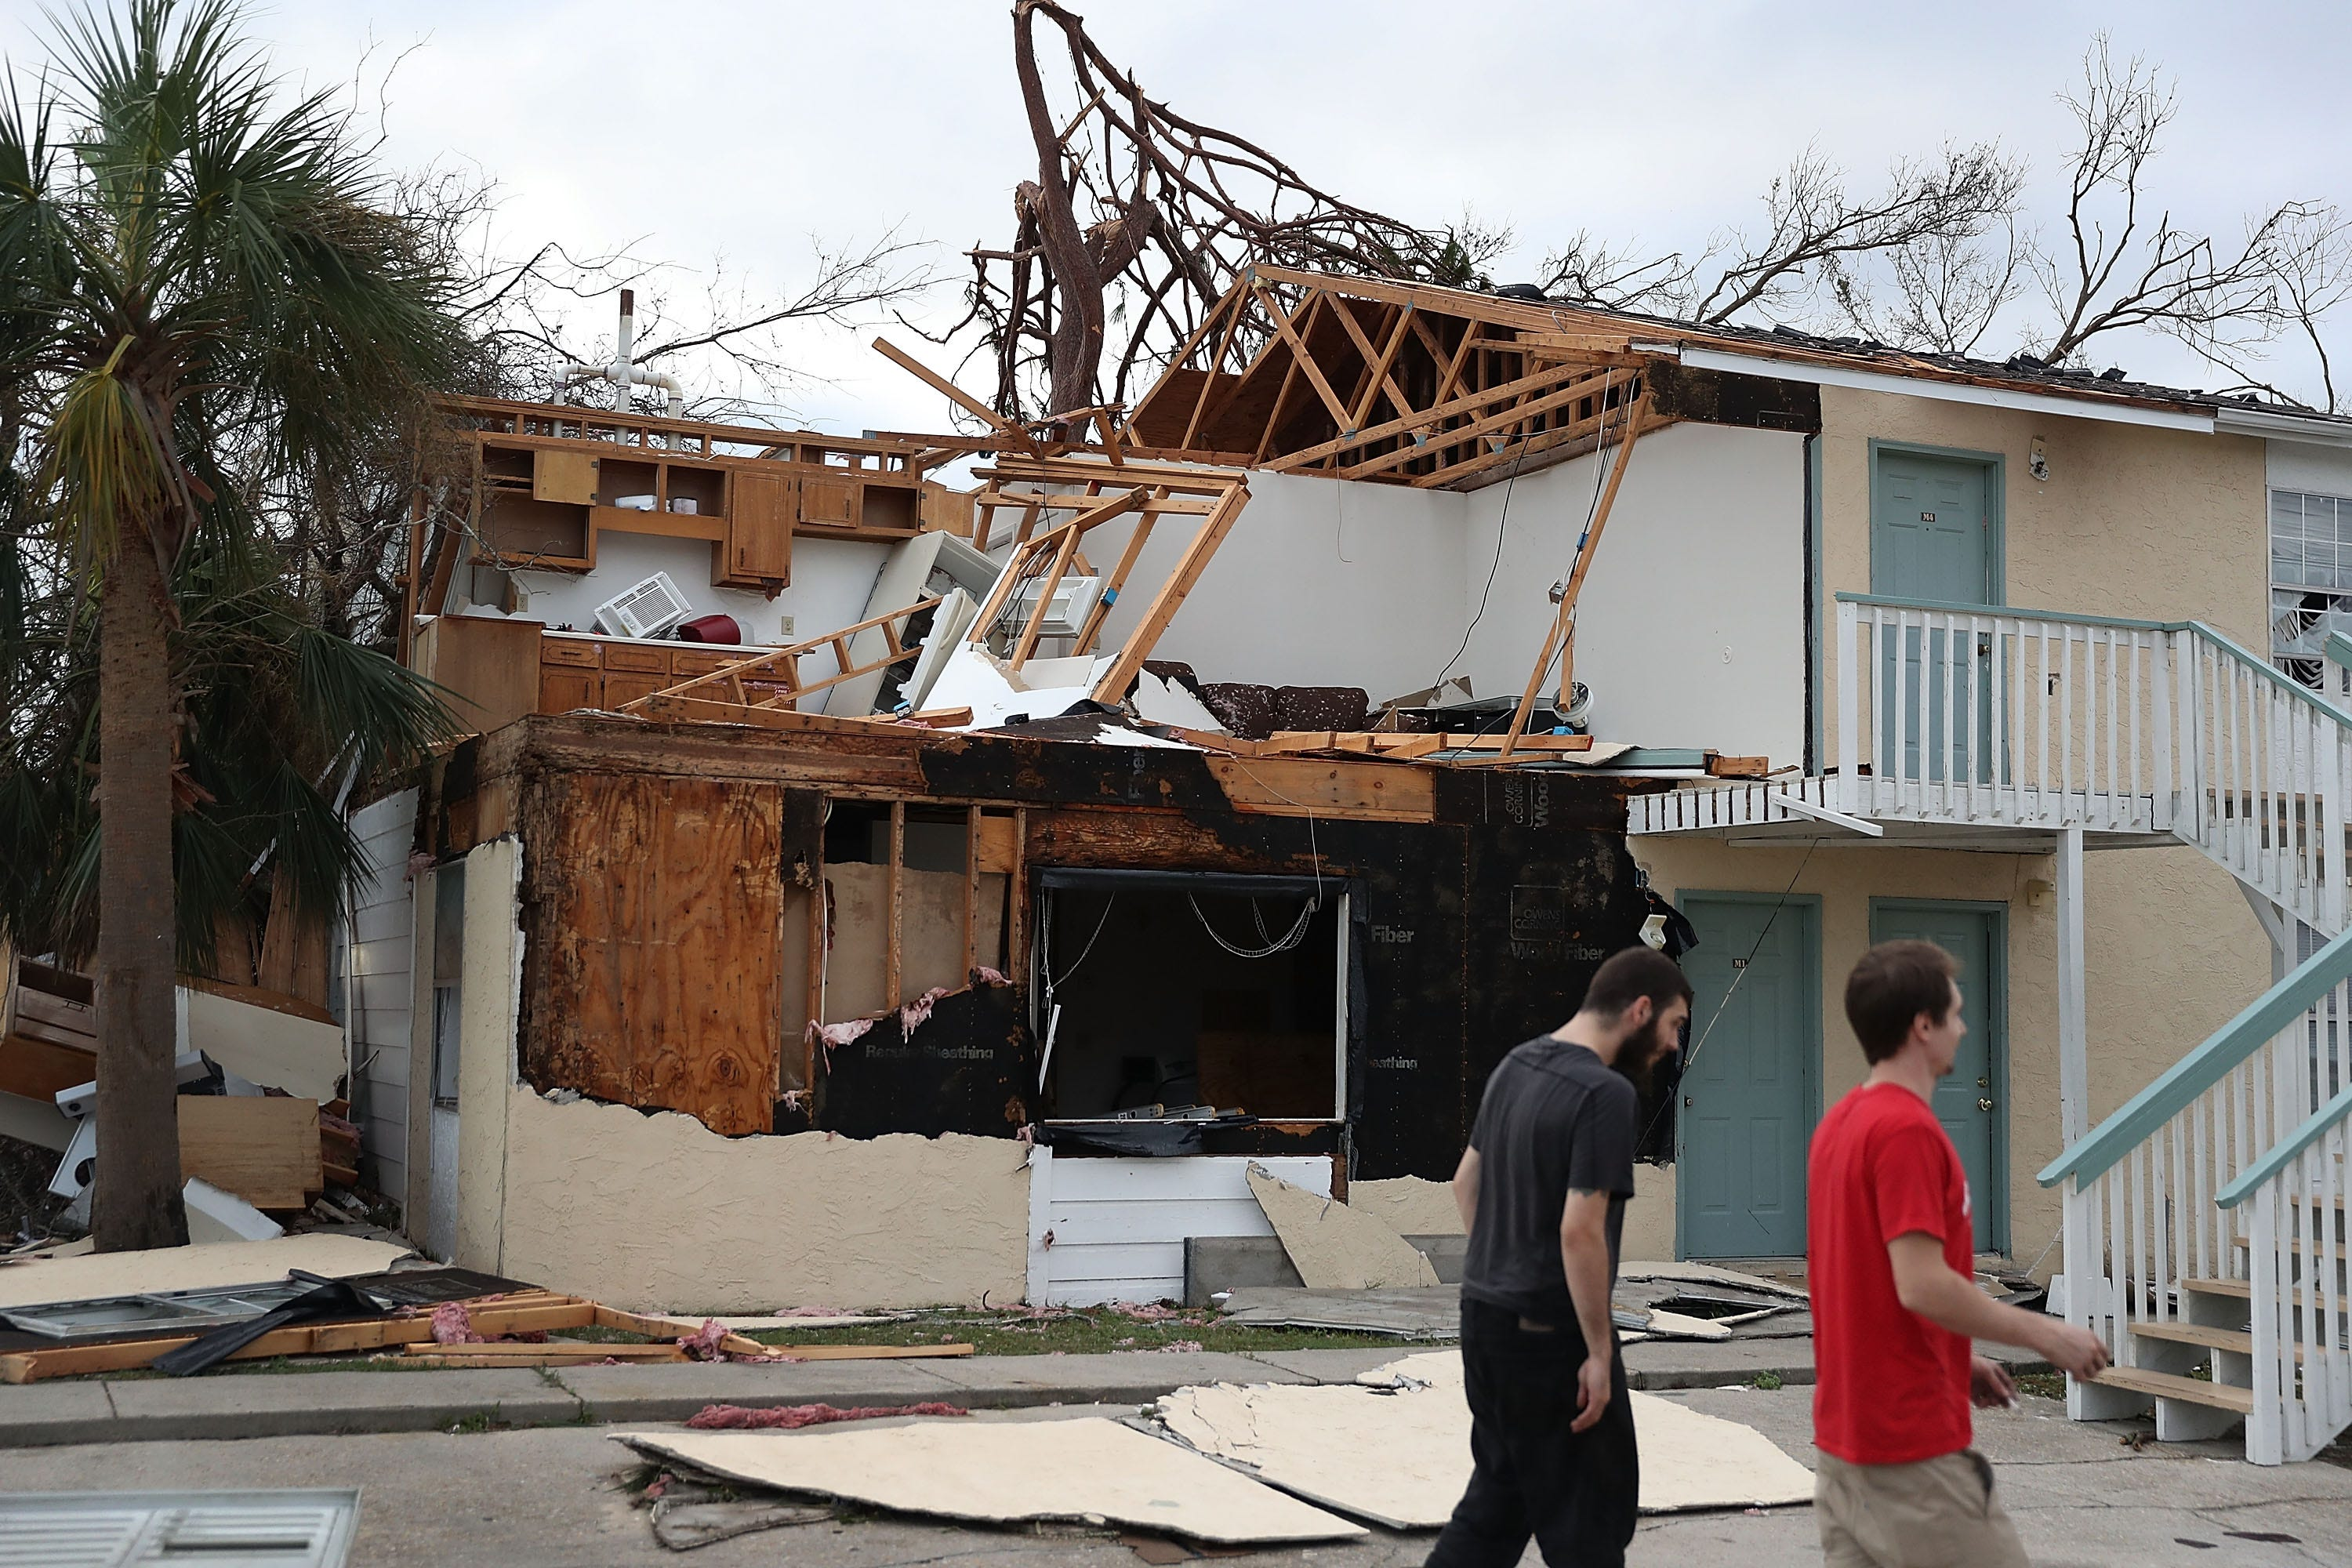 PANAMA CITY, FL - OCTOBER 11:  People walk past an apartment destroyed by Hurricane Michael on October 11, 2018 in Panama City, Florida. The hurricane hit the Florida Panhandle as a category 4 storm.  (Photo by Joe Raedle/Getty Images) ORG XMIT: 775241167 ORIG FILE ID: 1051884006